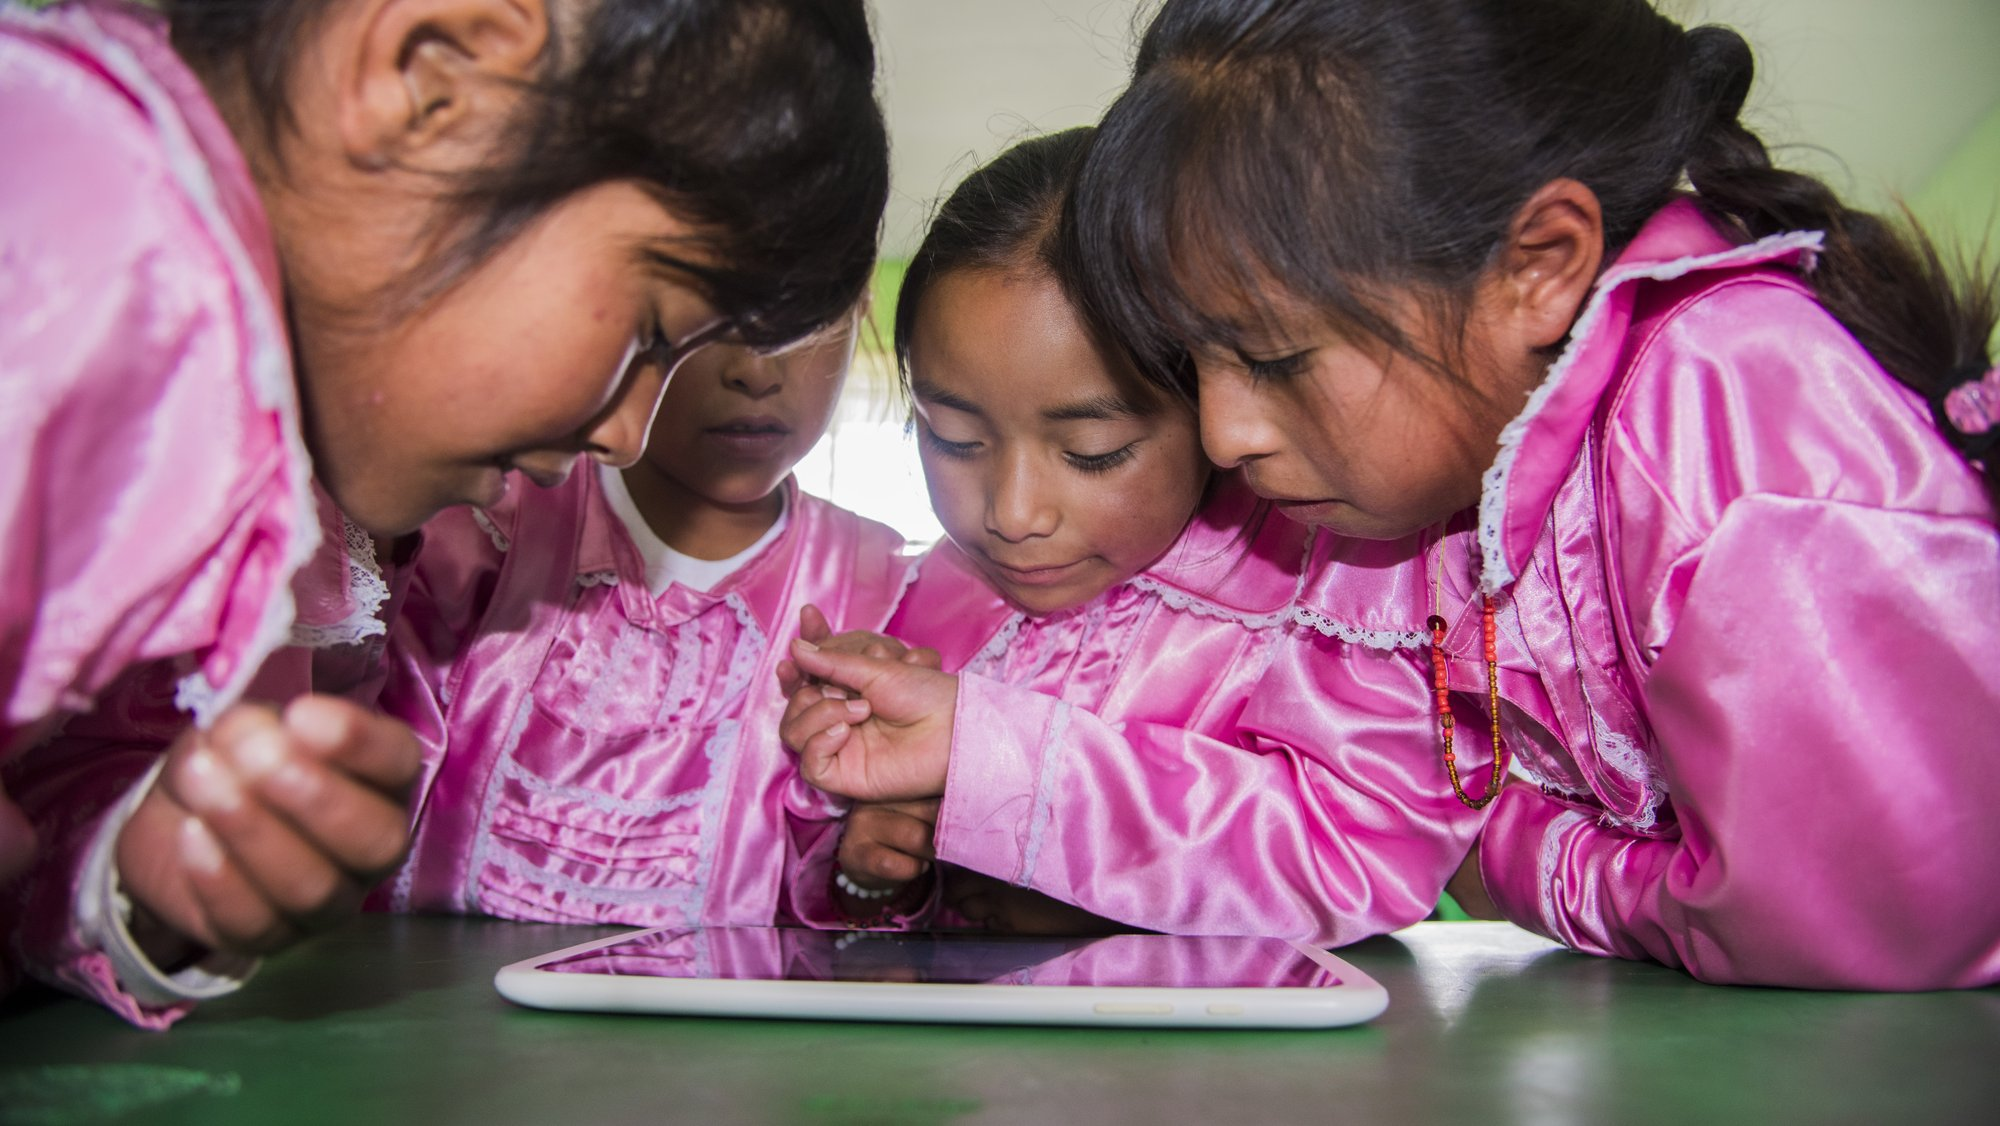 Students of Mazahua background explore learning materials on a tablet at an UNETE-supported school in San Felipe del Progreso, State of Mexico..JPG